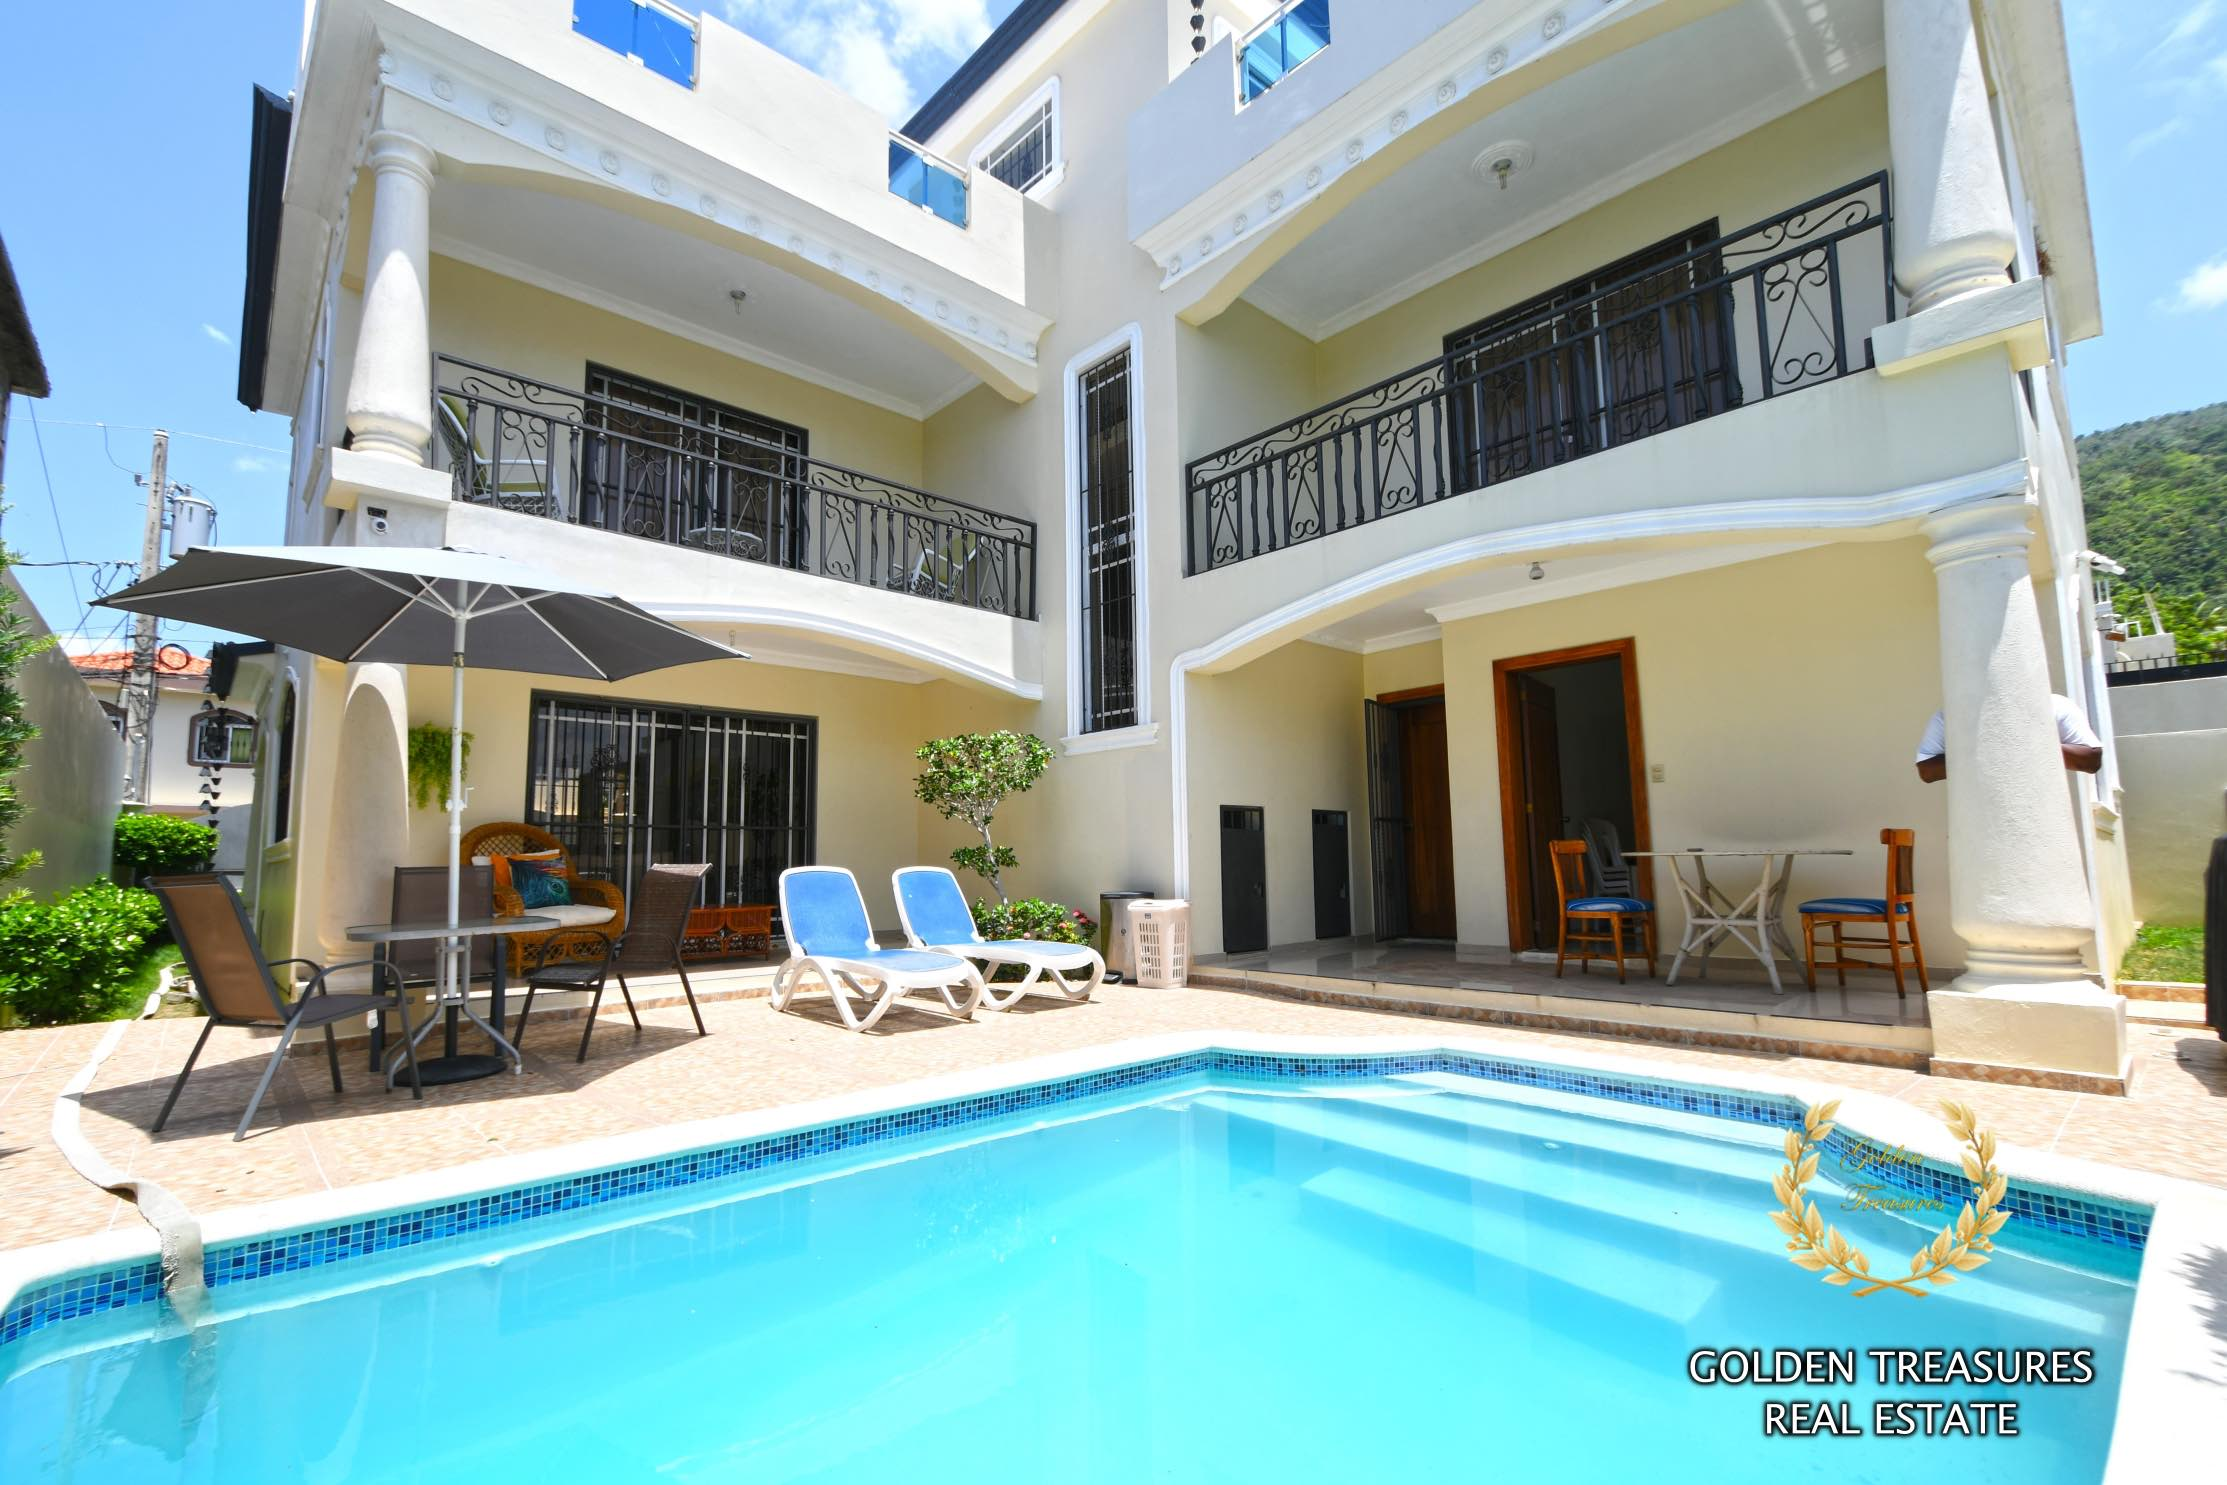 4 Bedroom Home Sale Puerto Plata